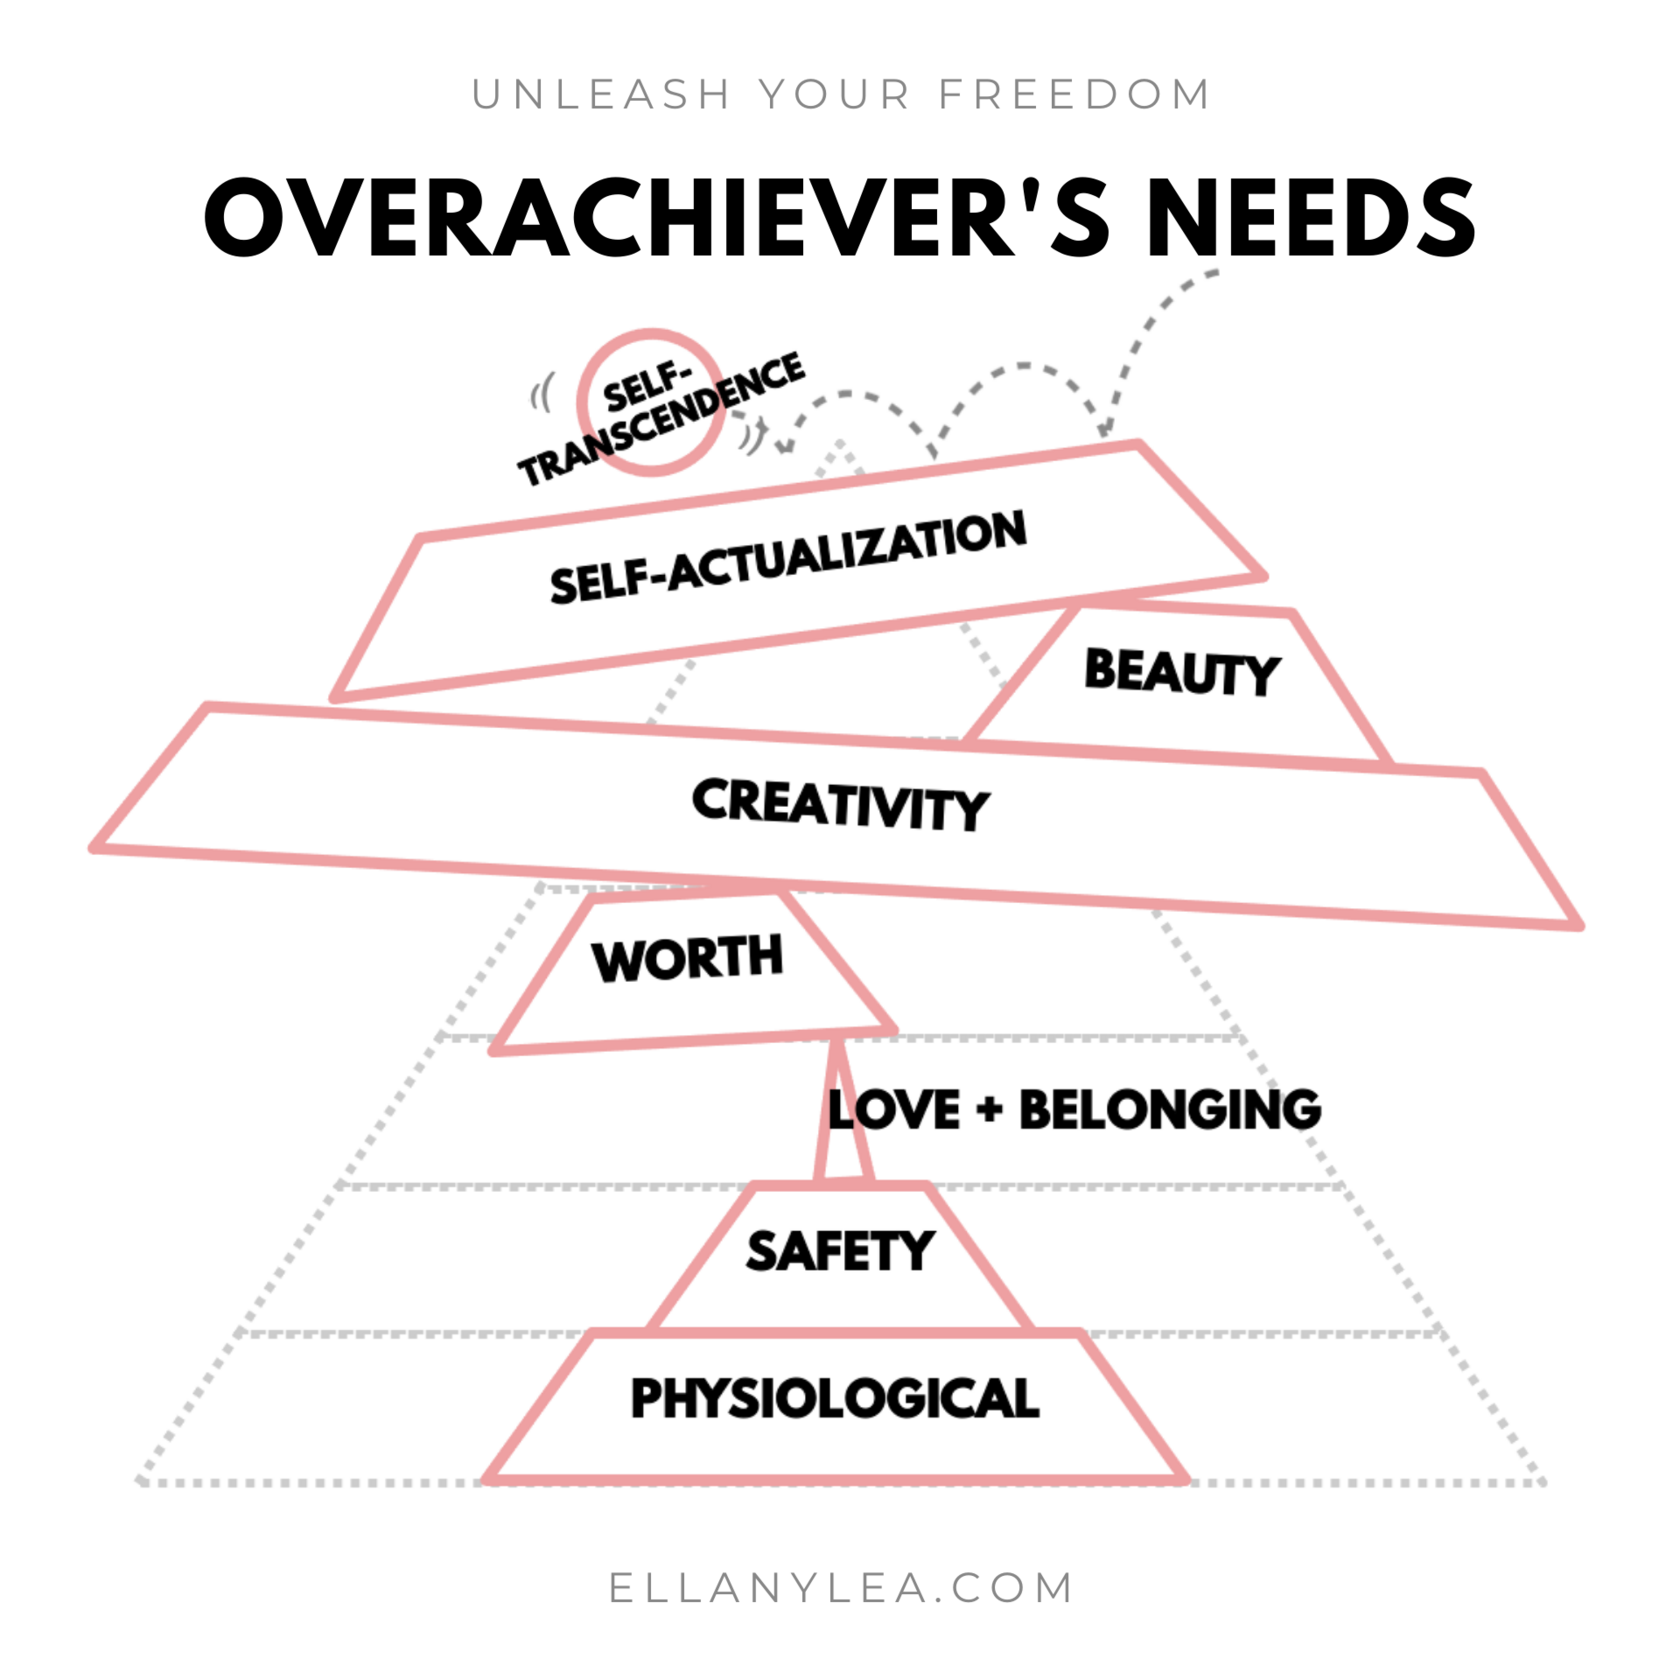 EL - Overachievers Hierarchy of Needs - Stack self-transcendence